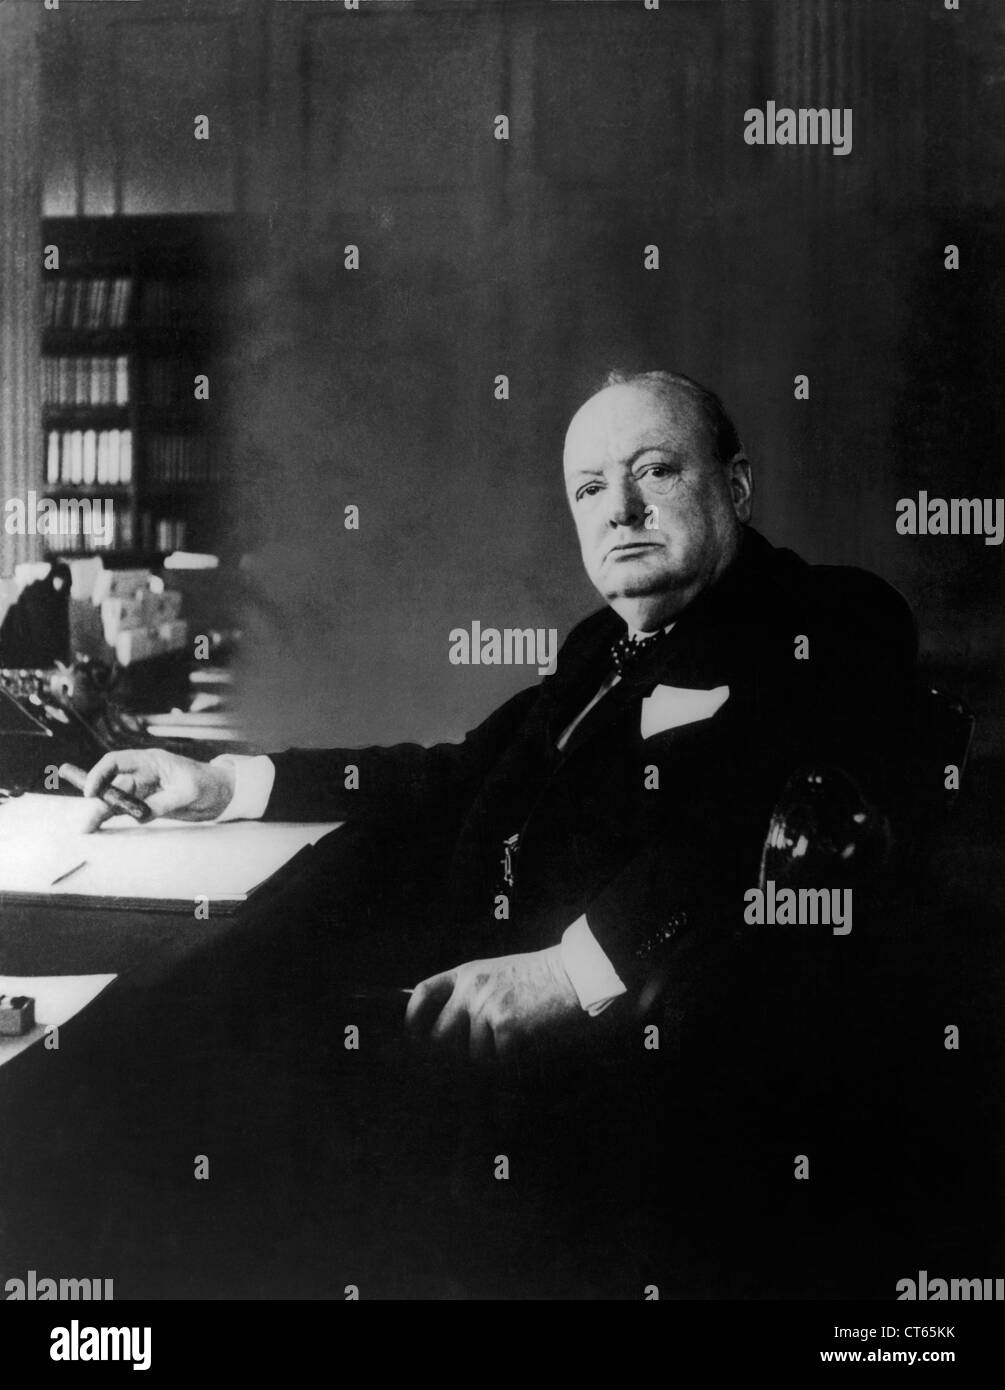 Portrait of Winston Churchill - Stock Image